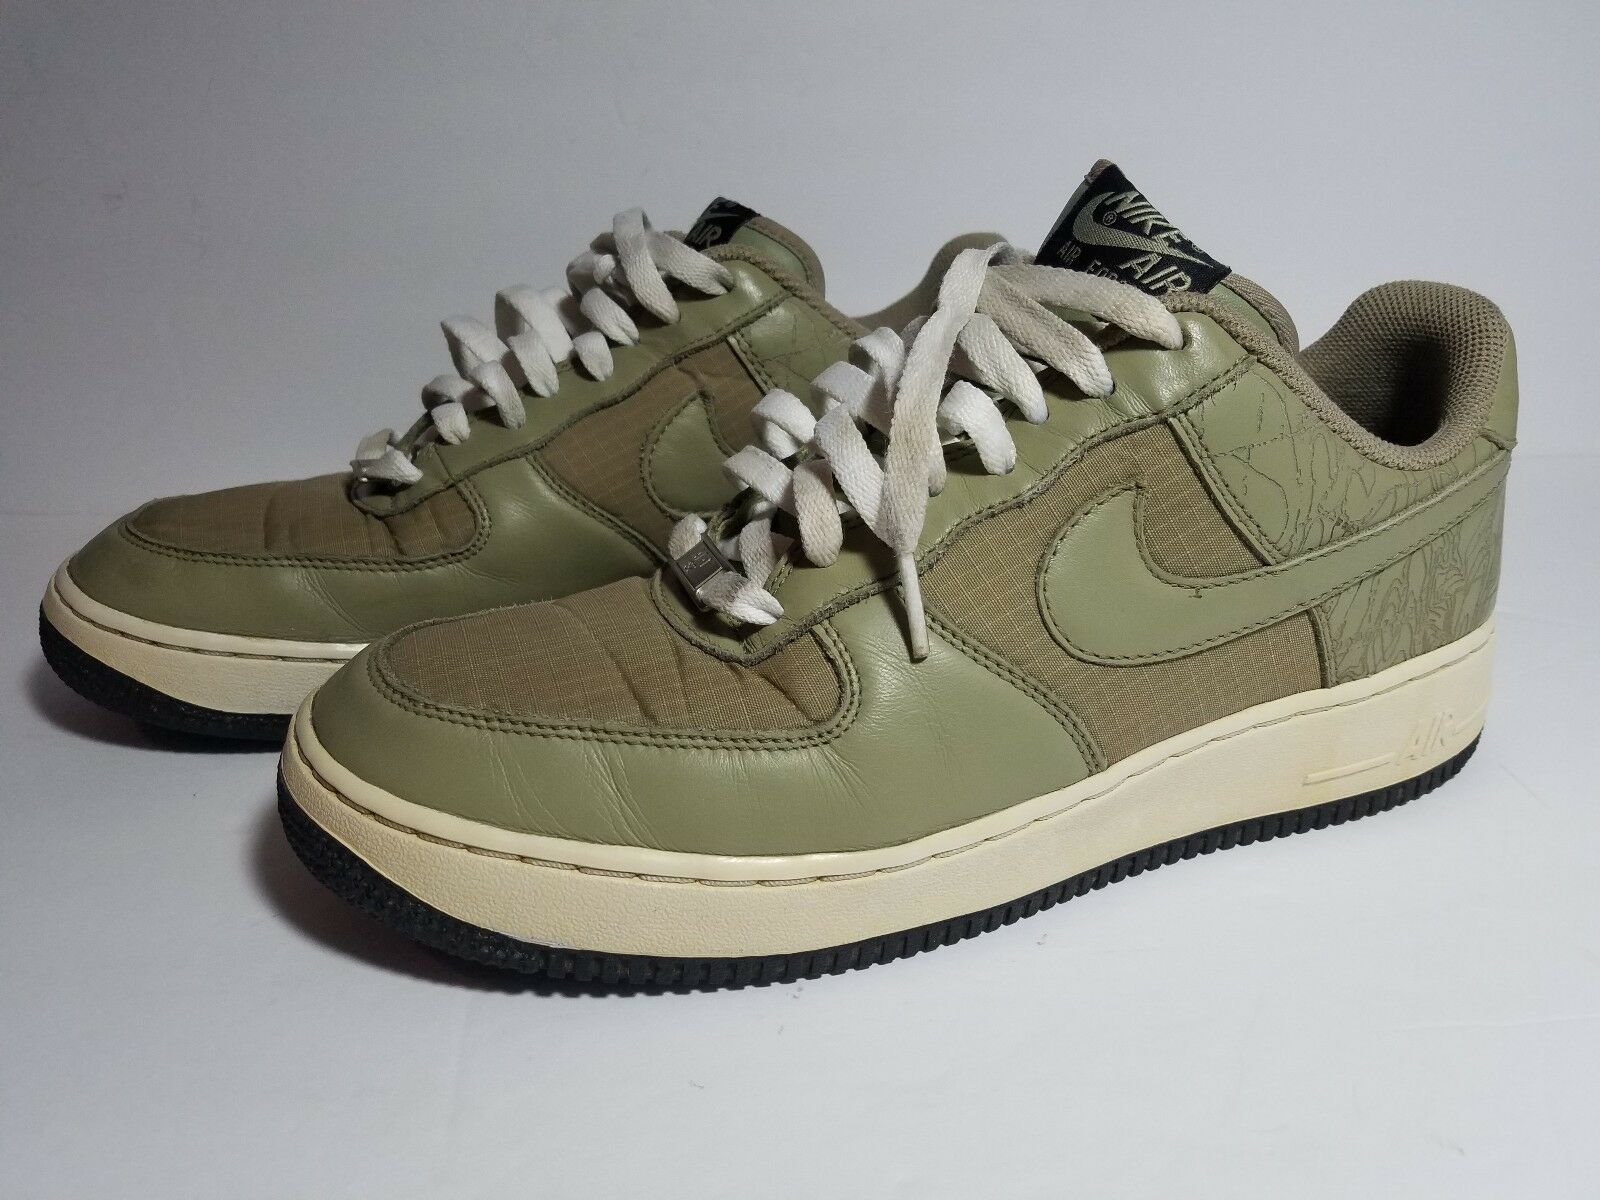 Nike Air Force 1 Military QK Sz 9.5 Olive Drab Tactical Marines Limited Edition